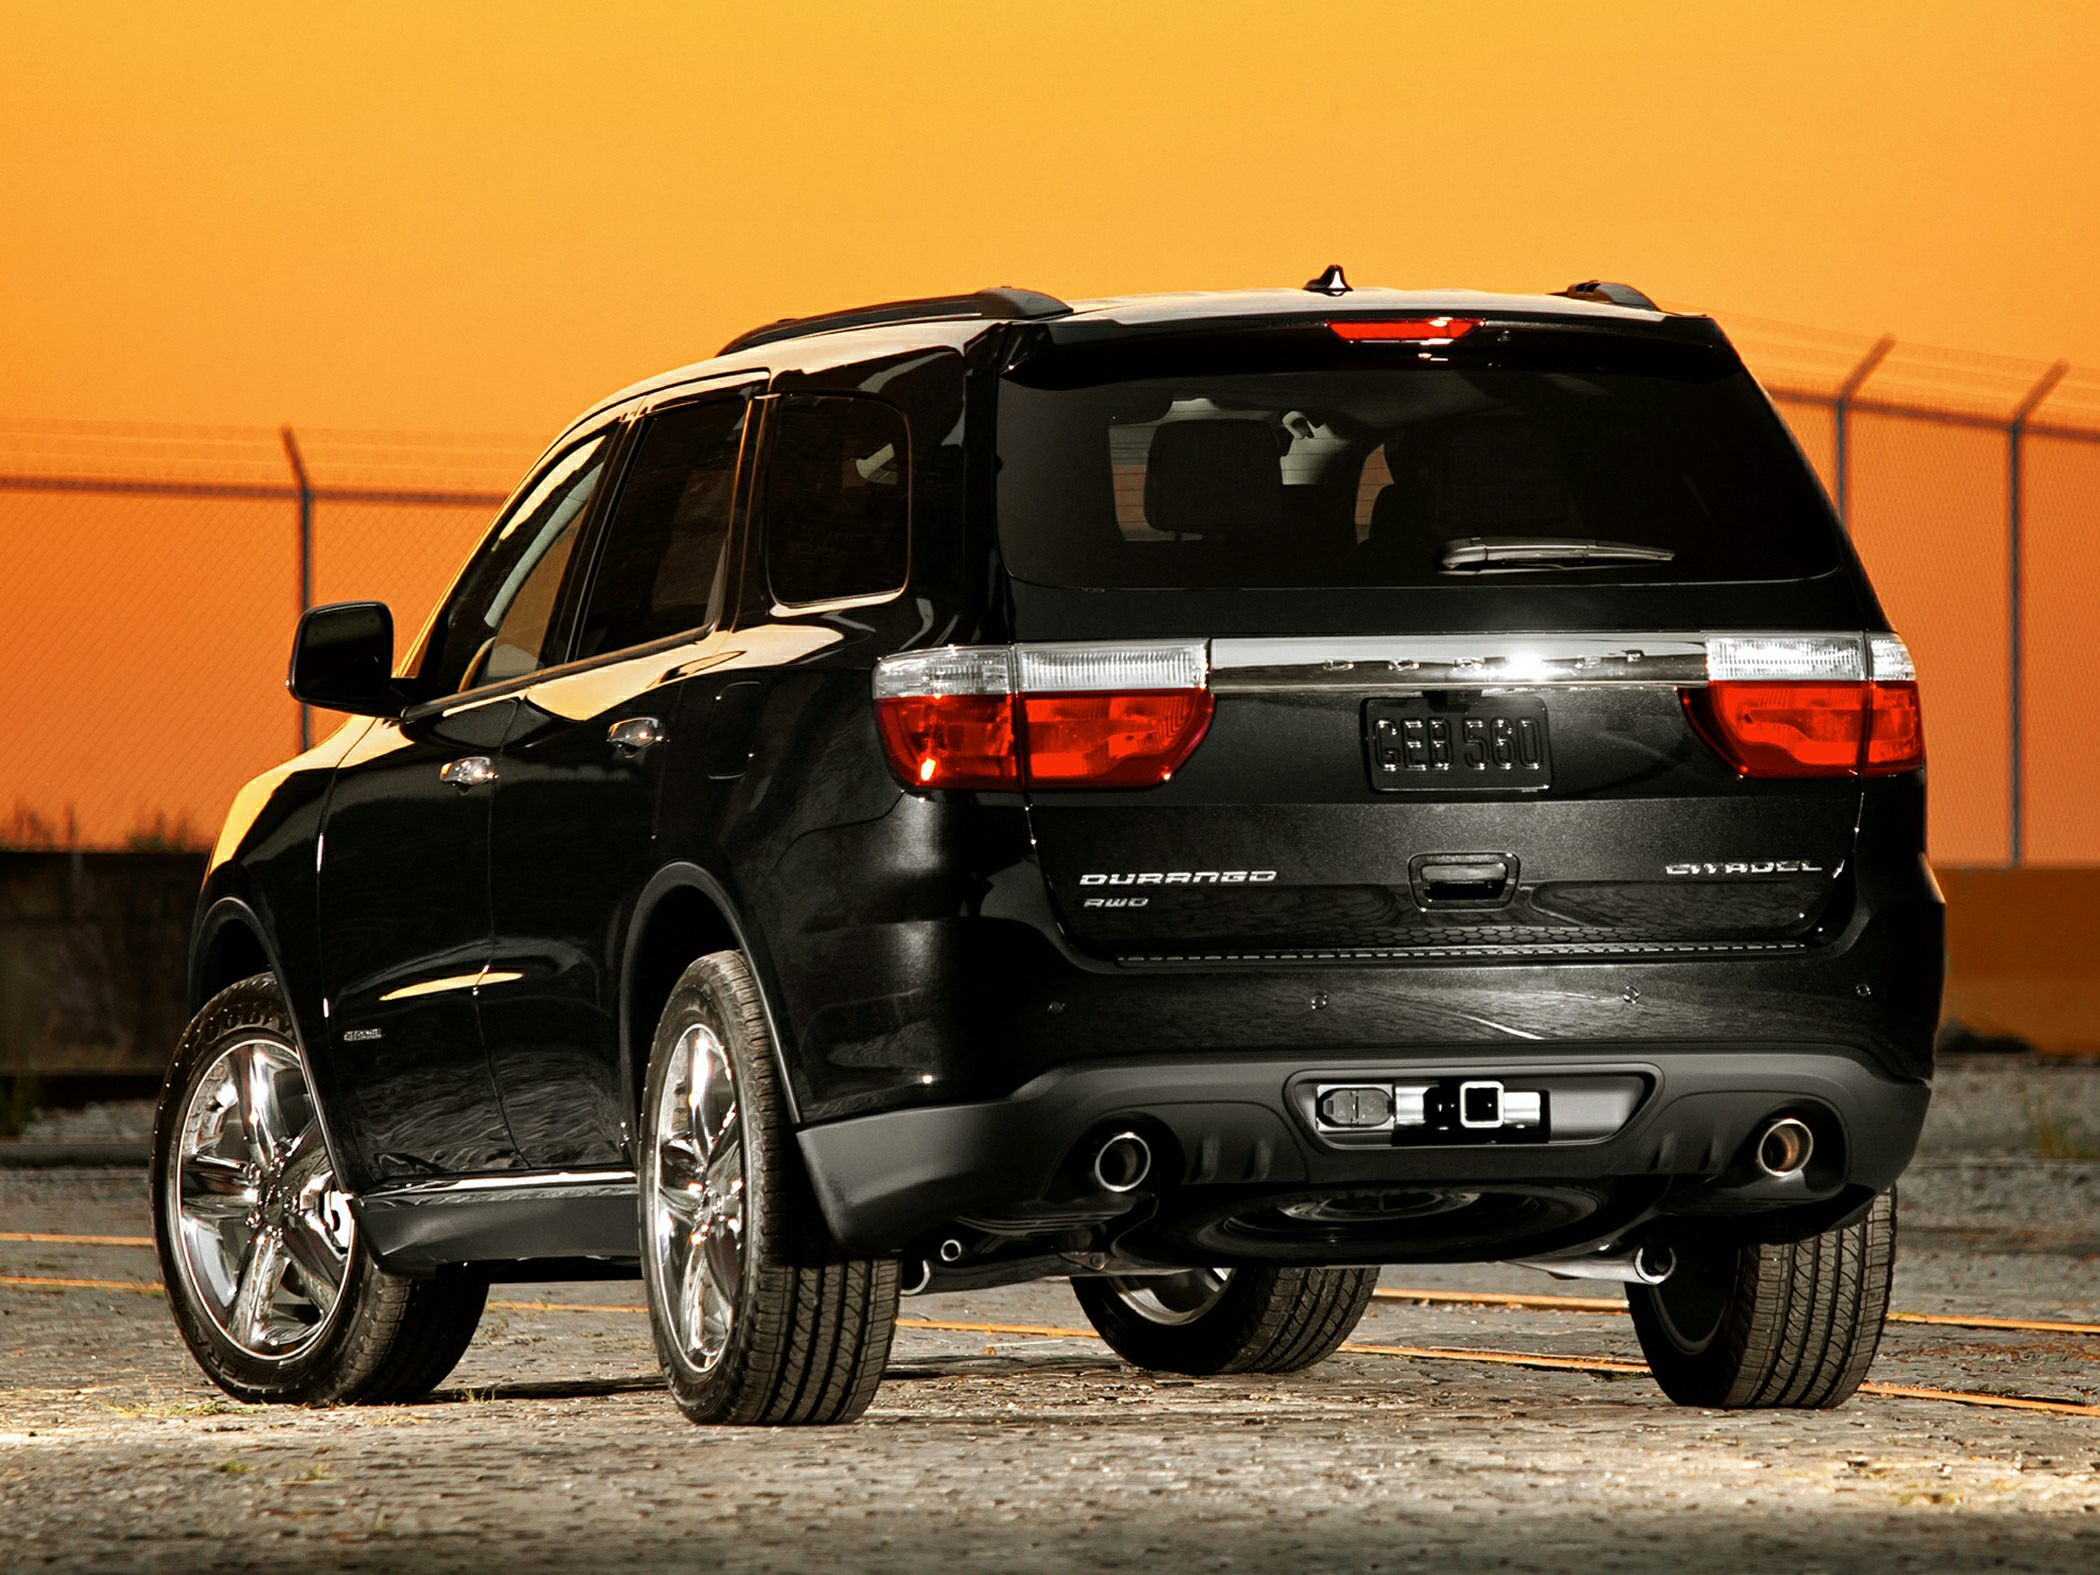 Dodge Durango Price Why You Must Experience Dodge Durango Price At Least Once In Your Lifeti In 2021 Dodge Durango Dodge Durango